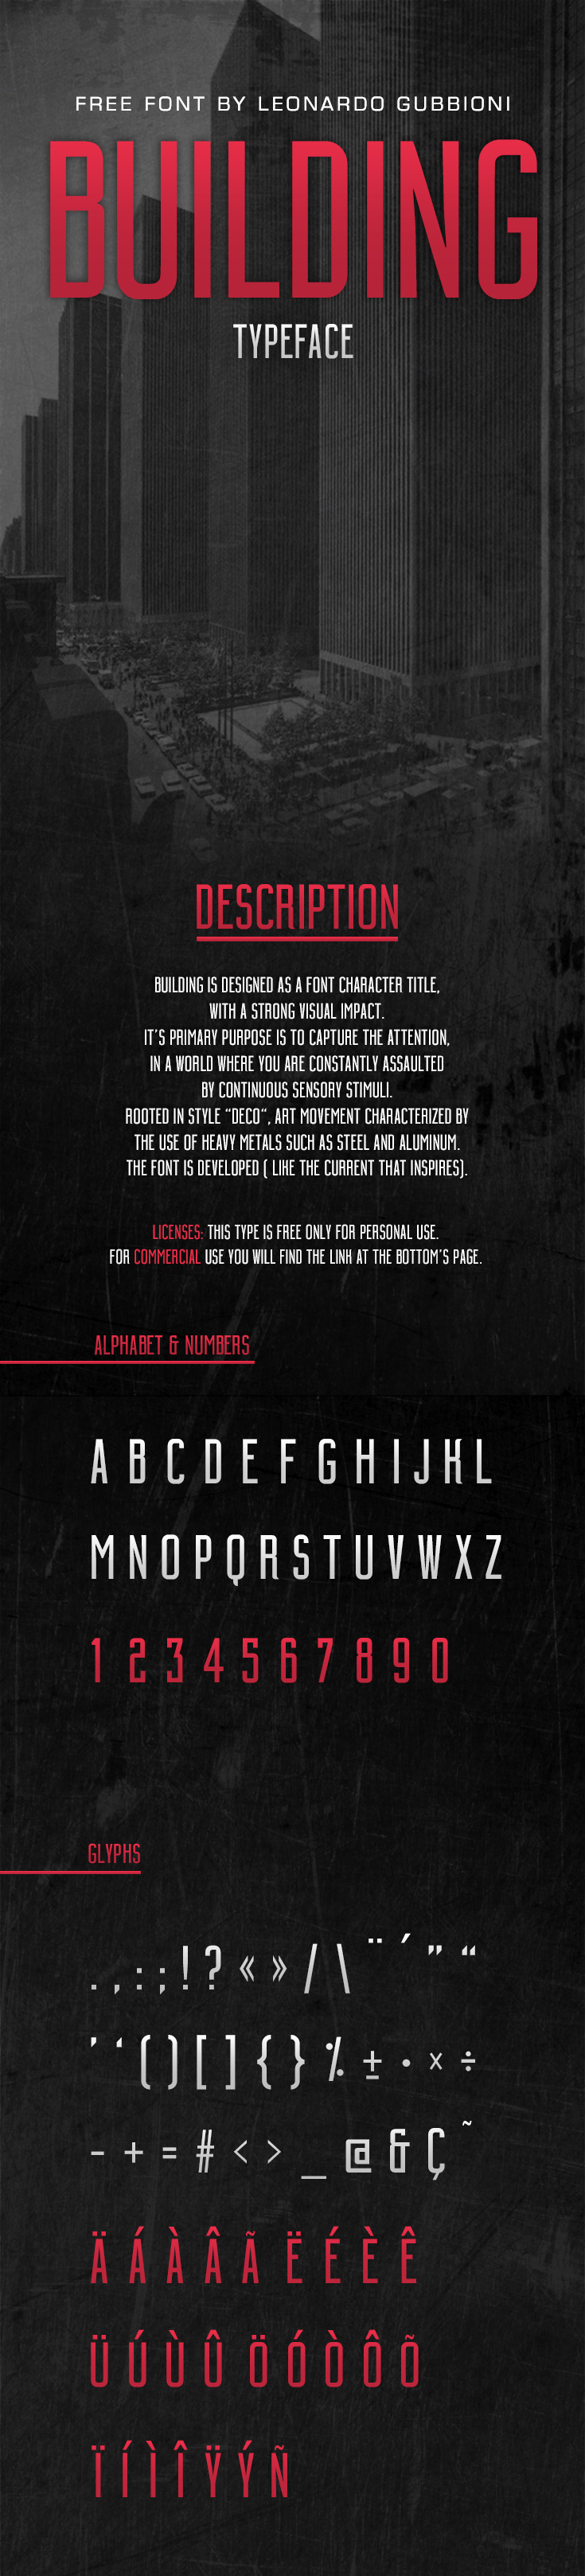 free typo type font Typeface building deco artdeco art deco Free font free typeface condesed free fonts fonts